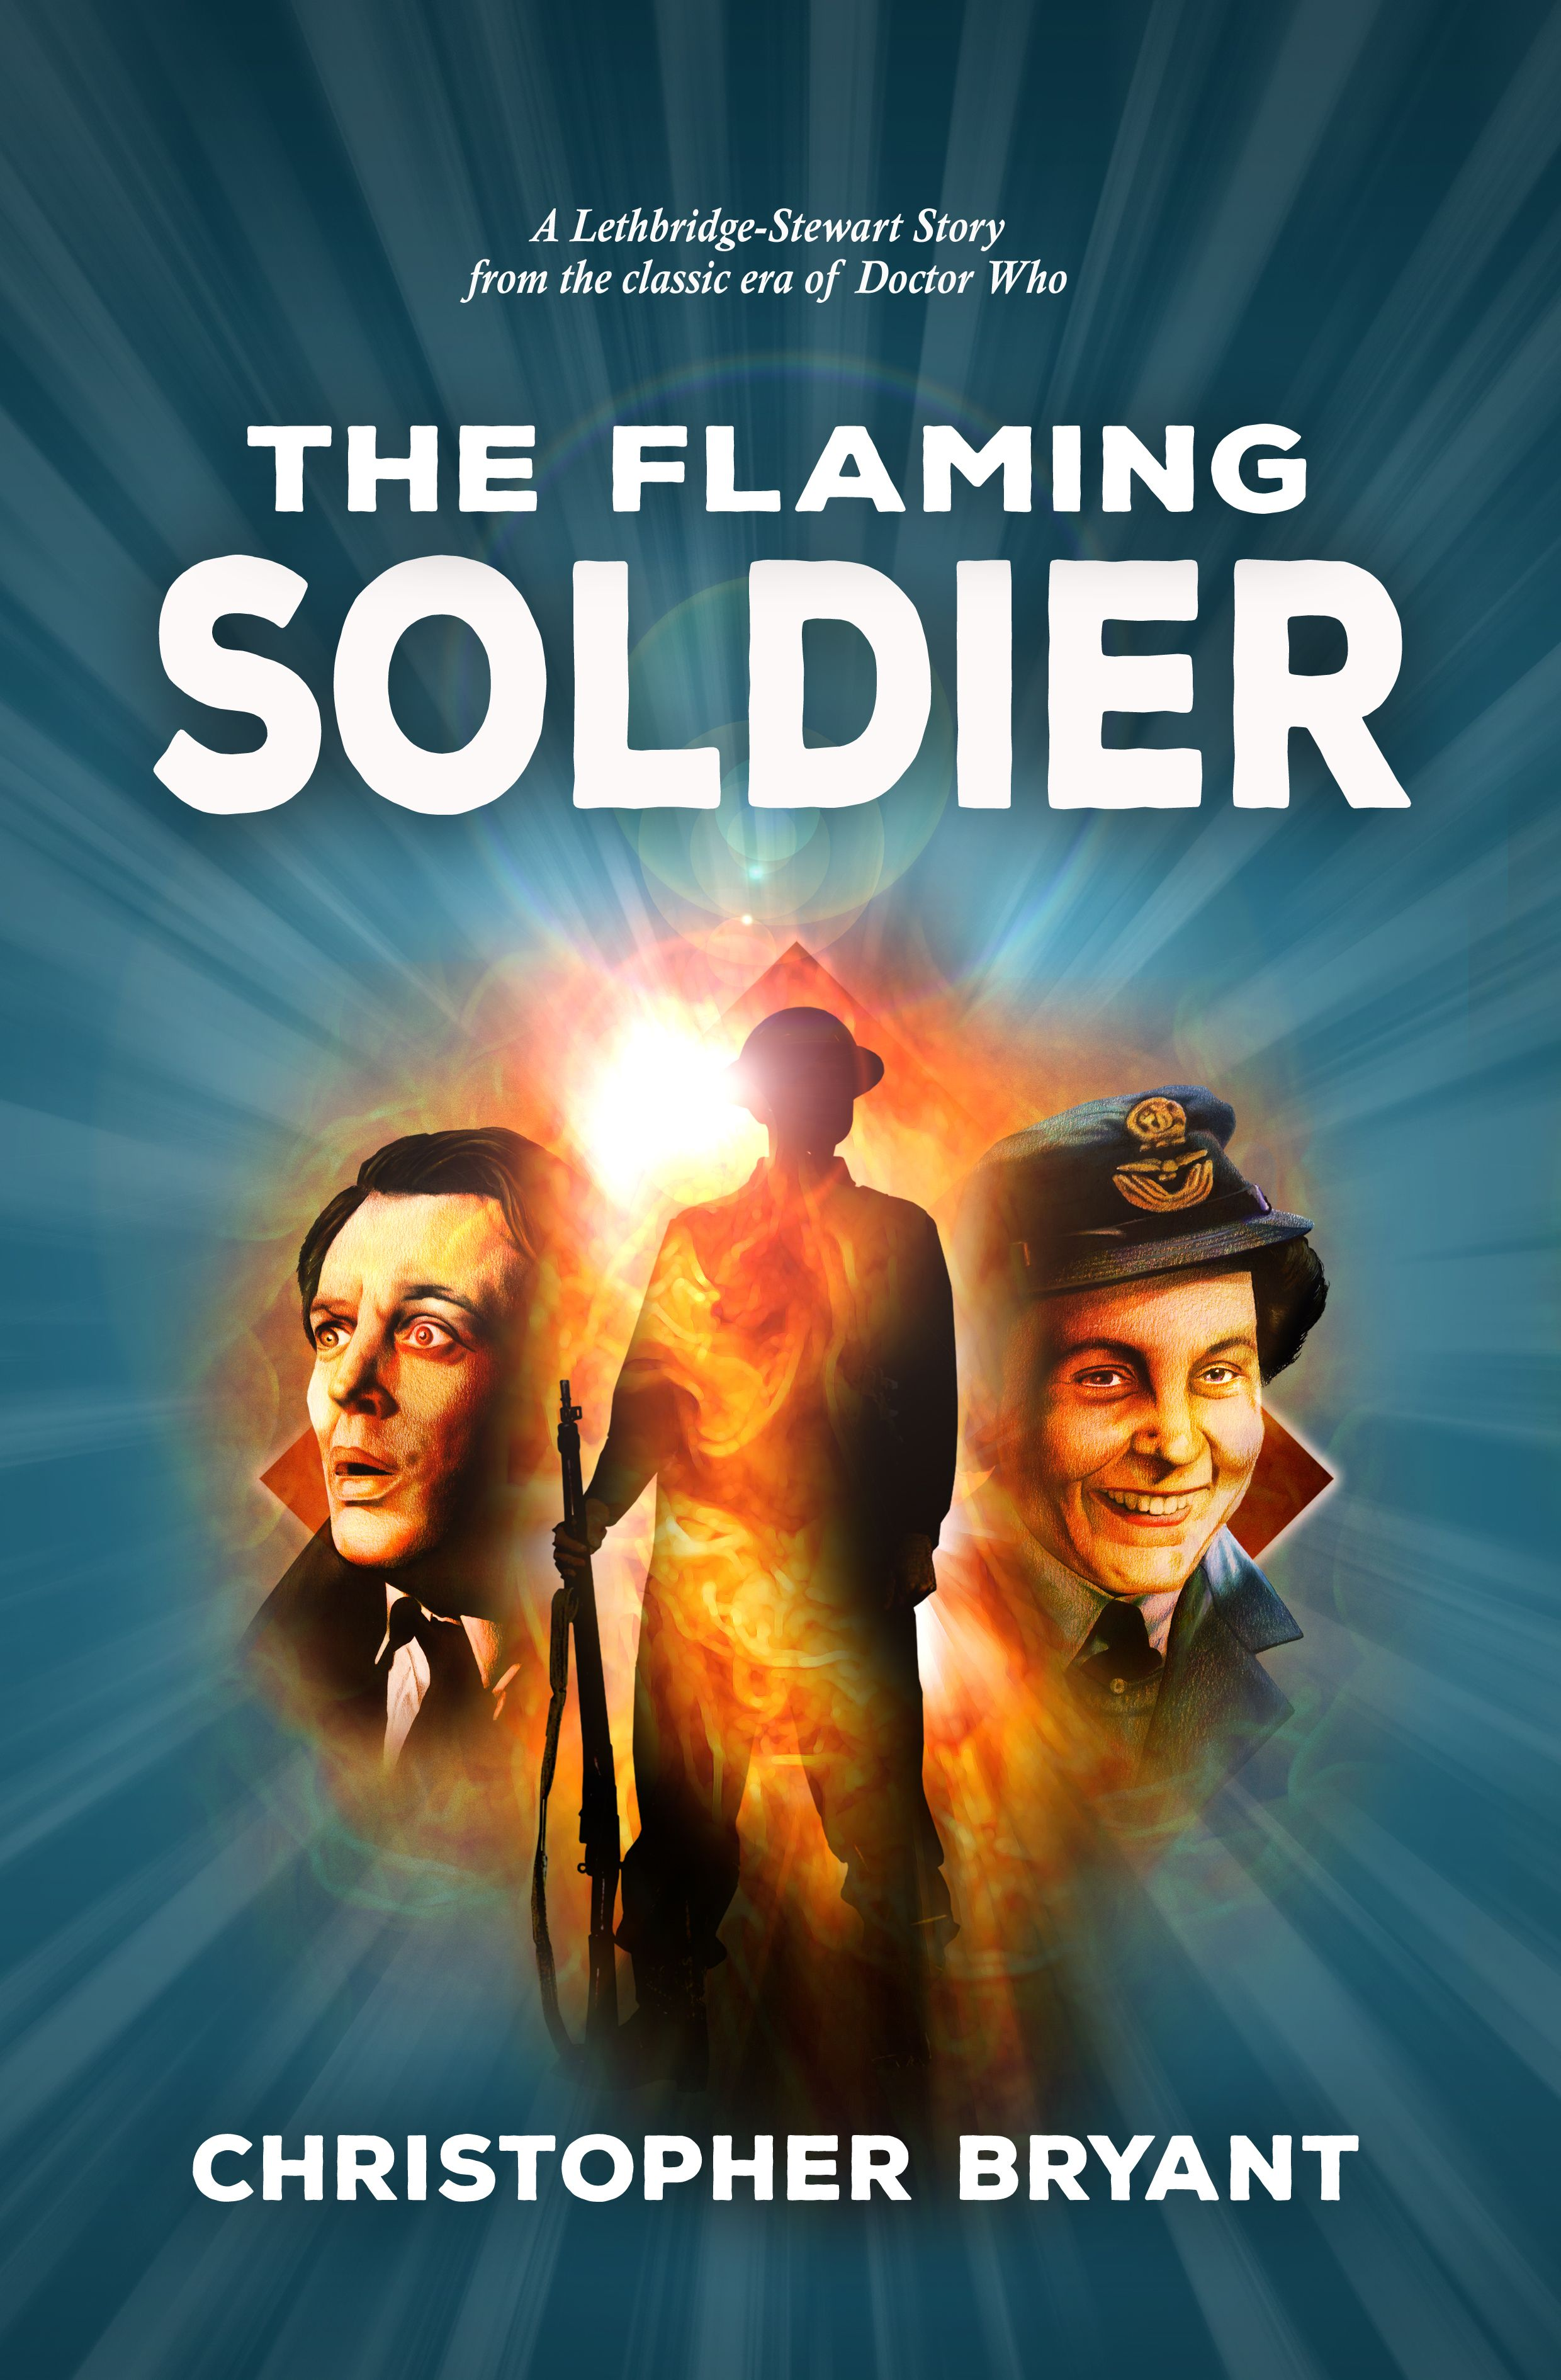 The Flaming Soldier (Credit: Candy Jar Books)